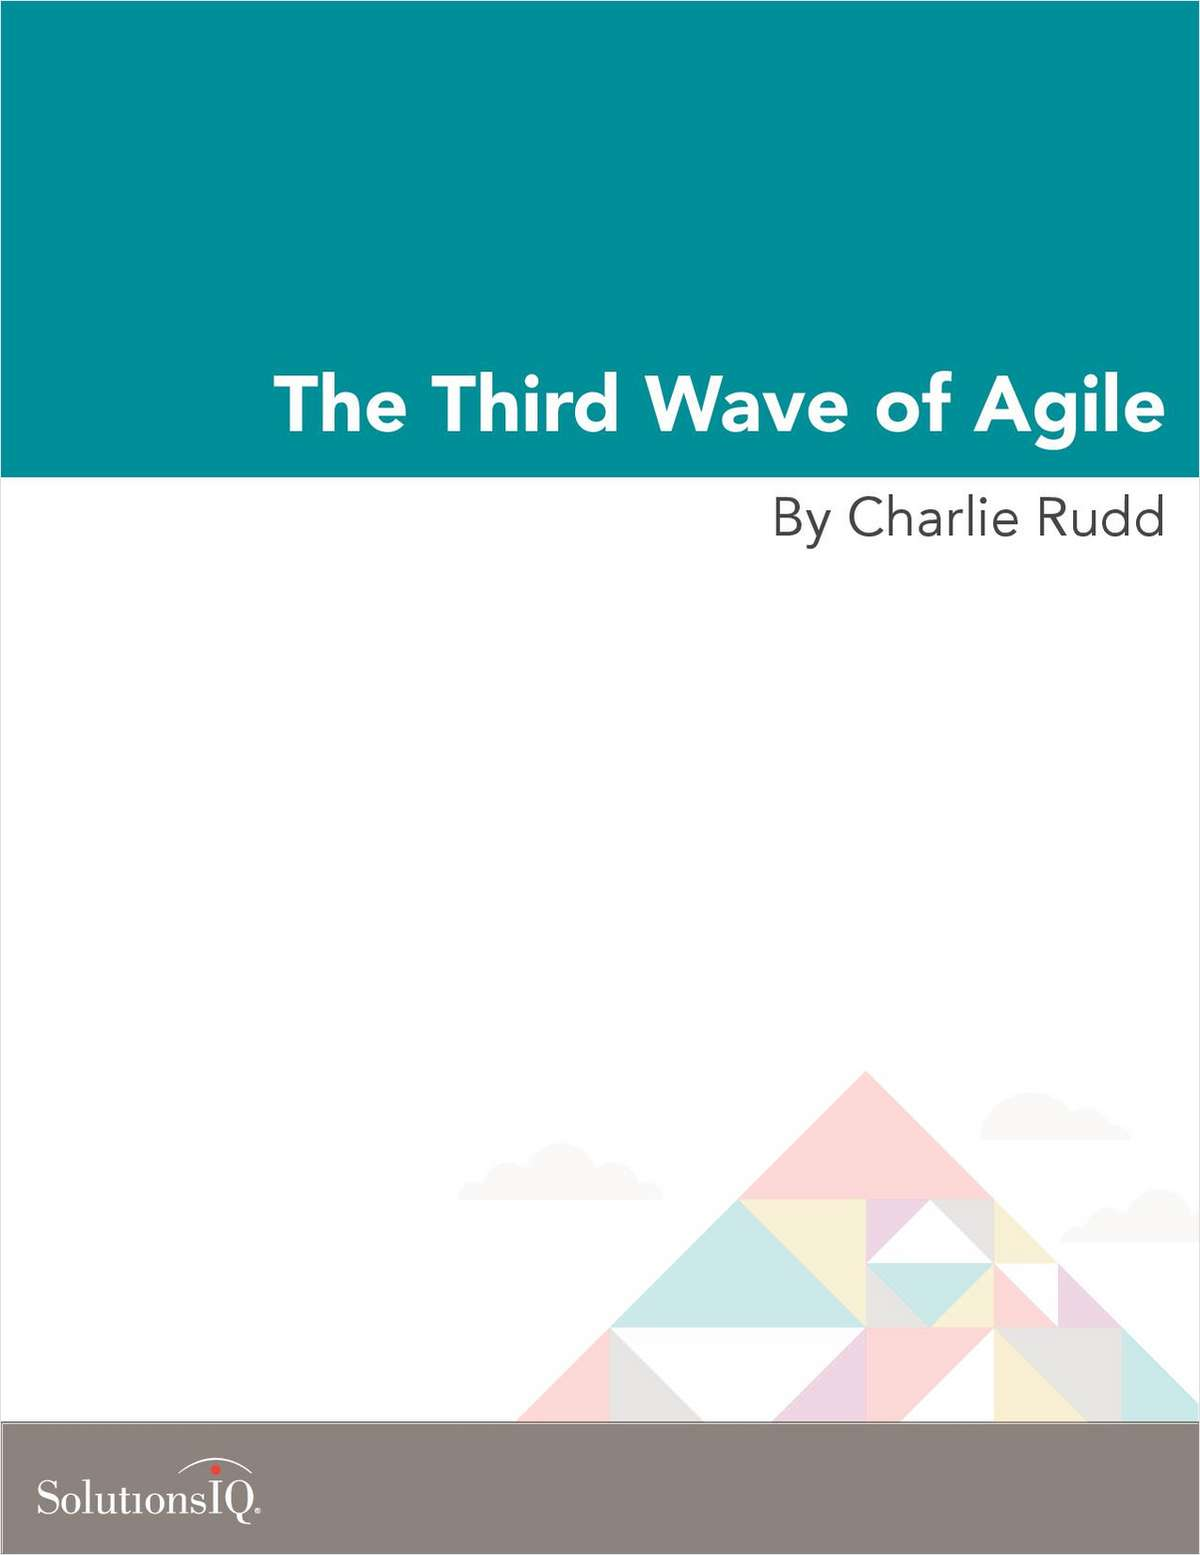 The Third Wave of Agile